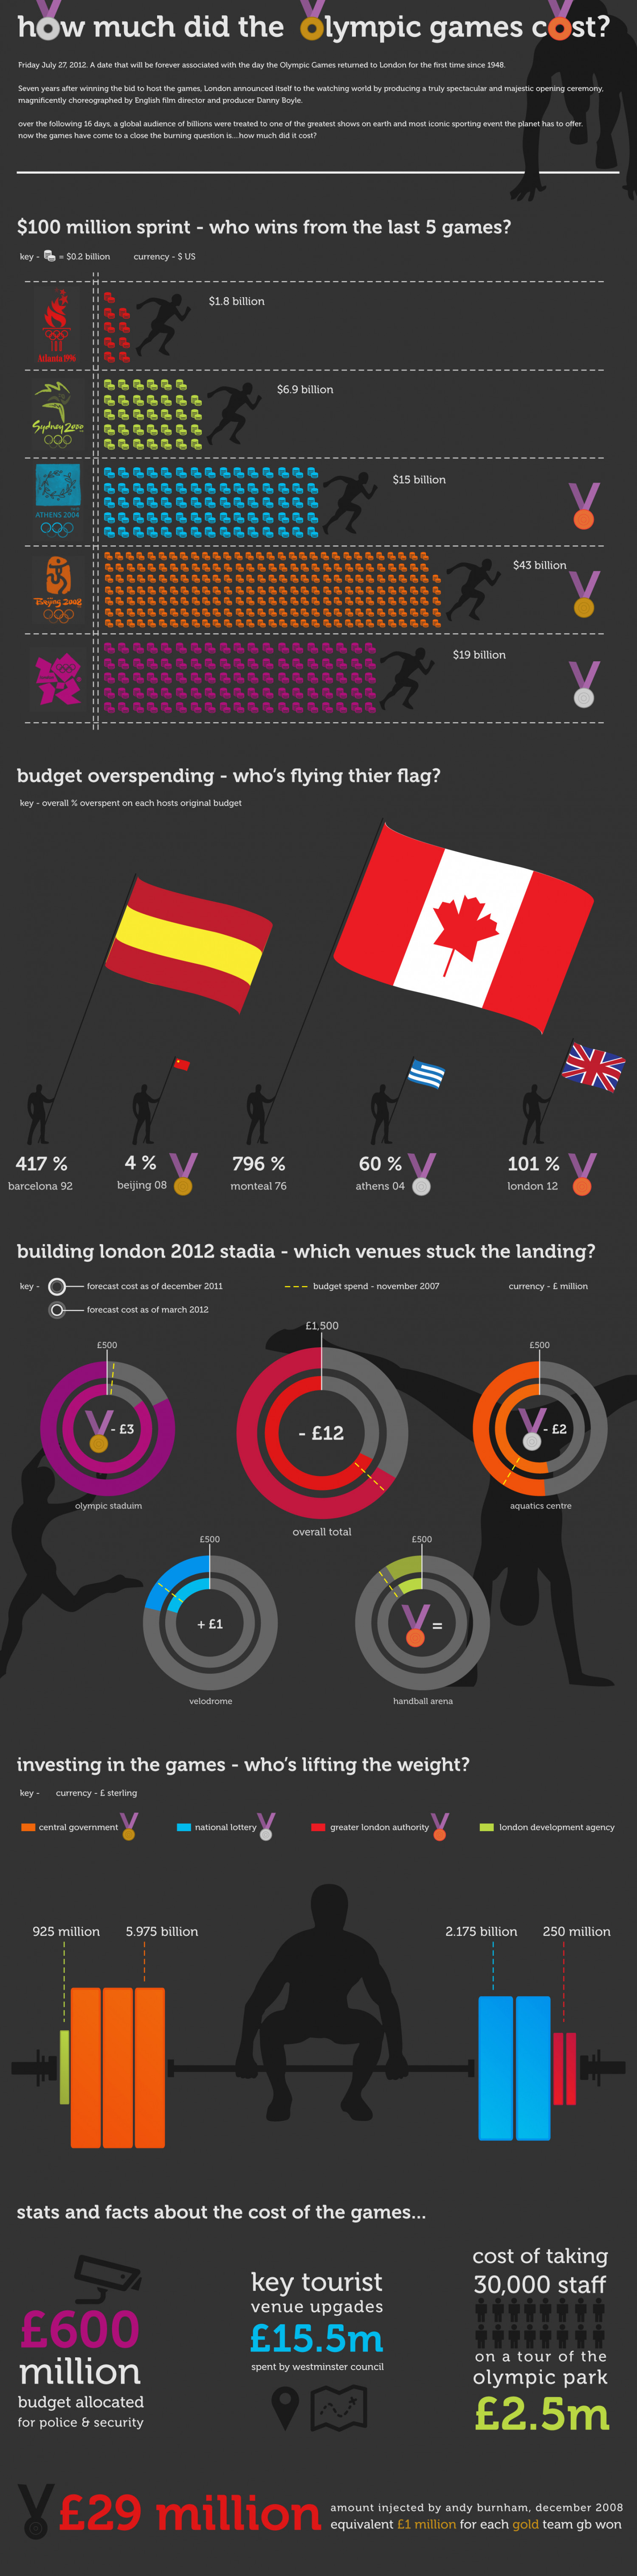 How Much Did the Olympics Cost? Infographic